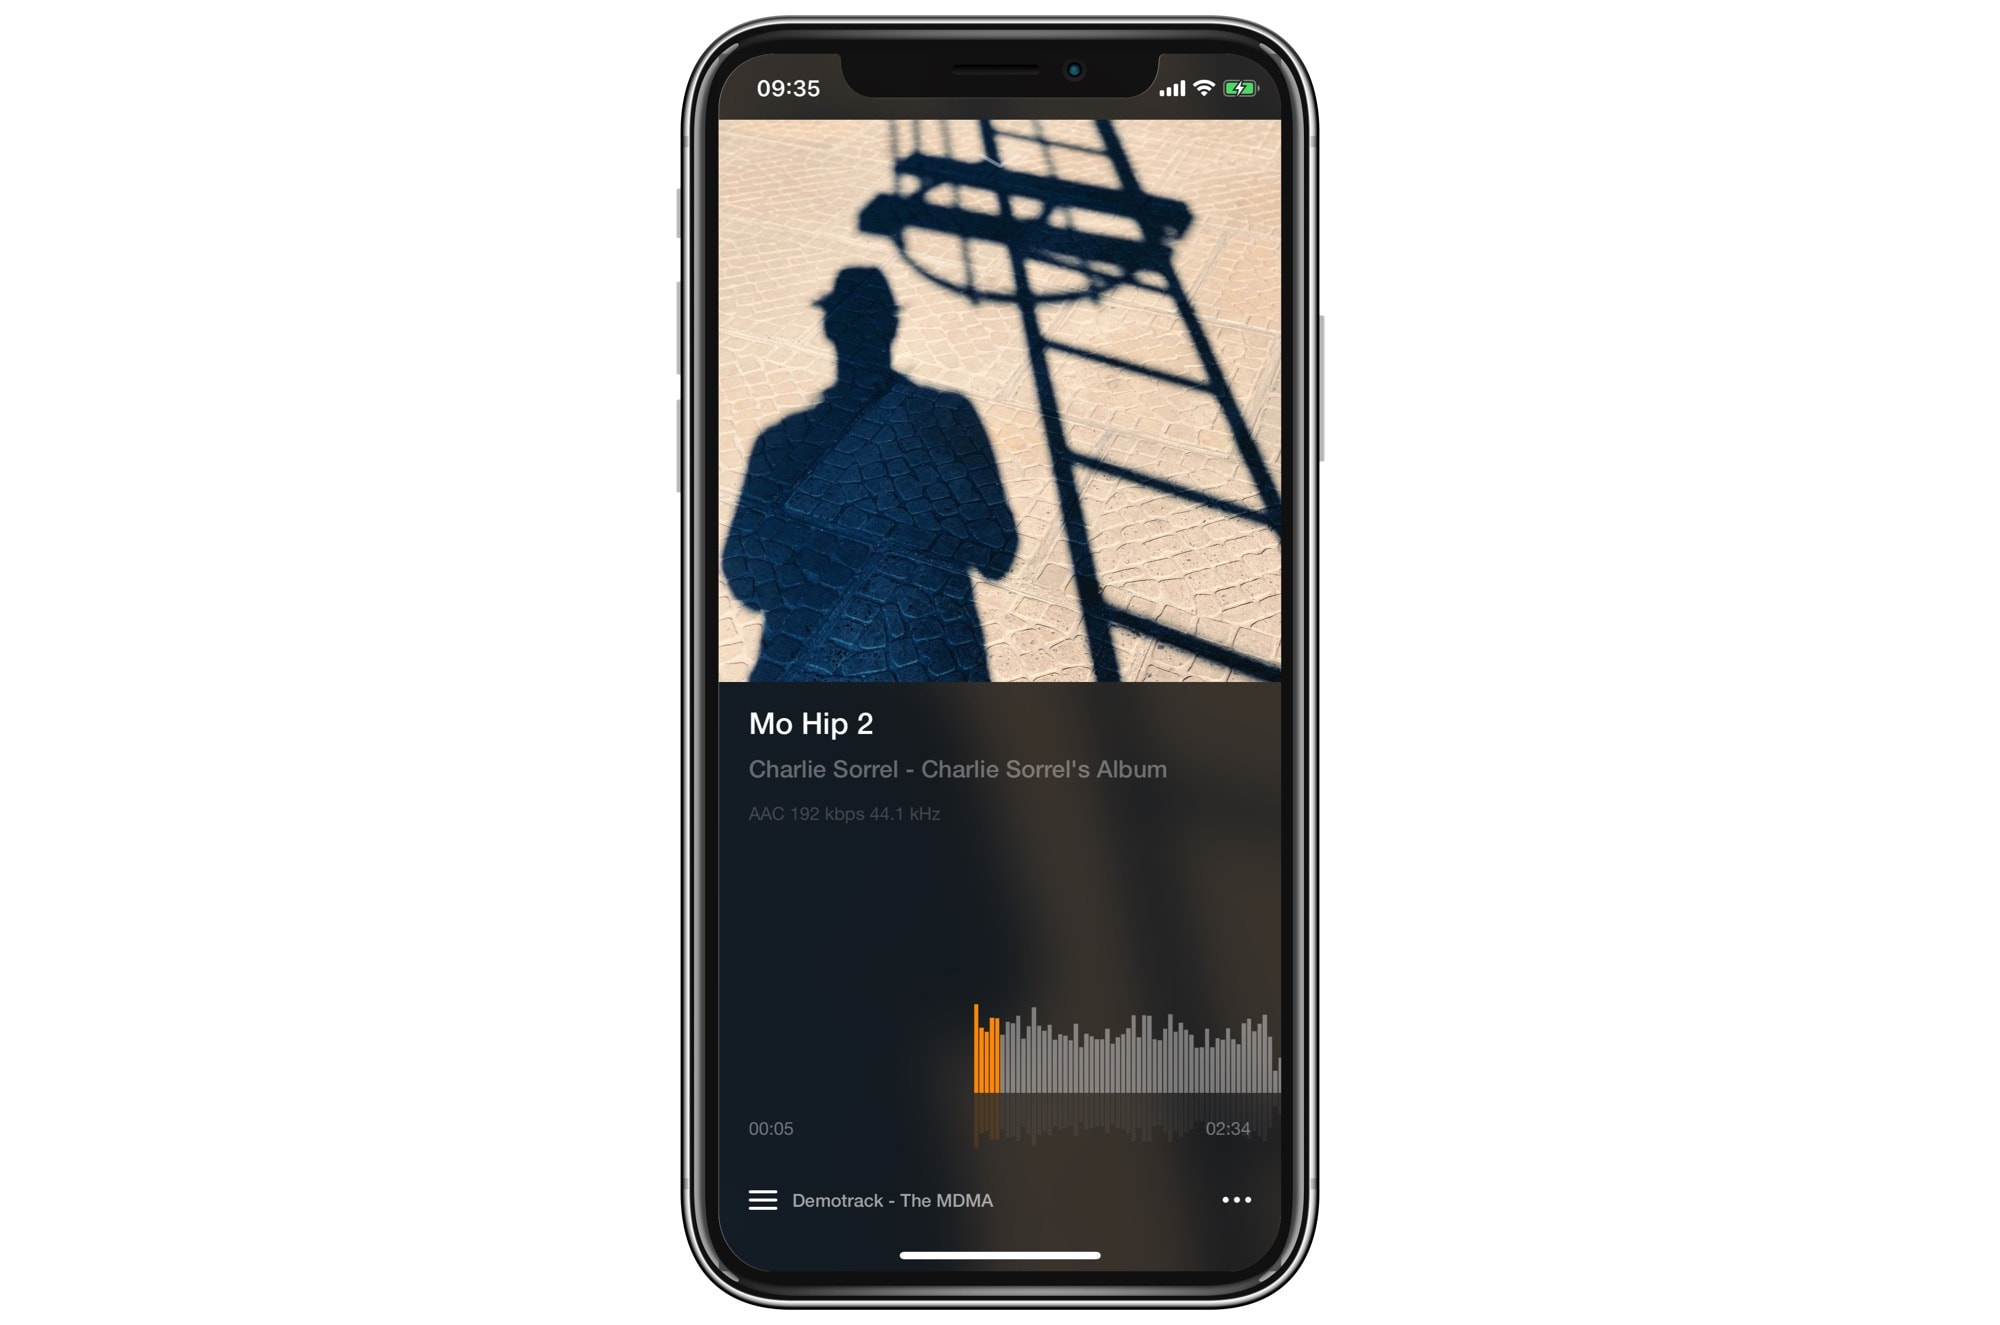 Vox even shows embedded album art.